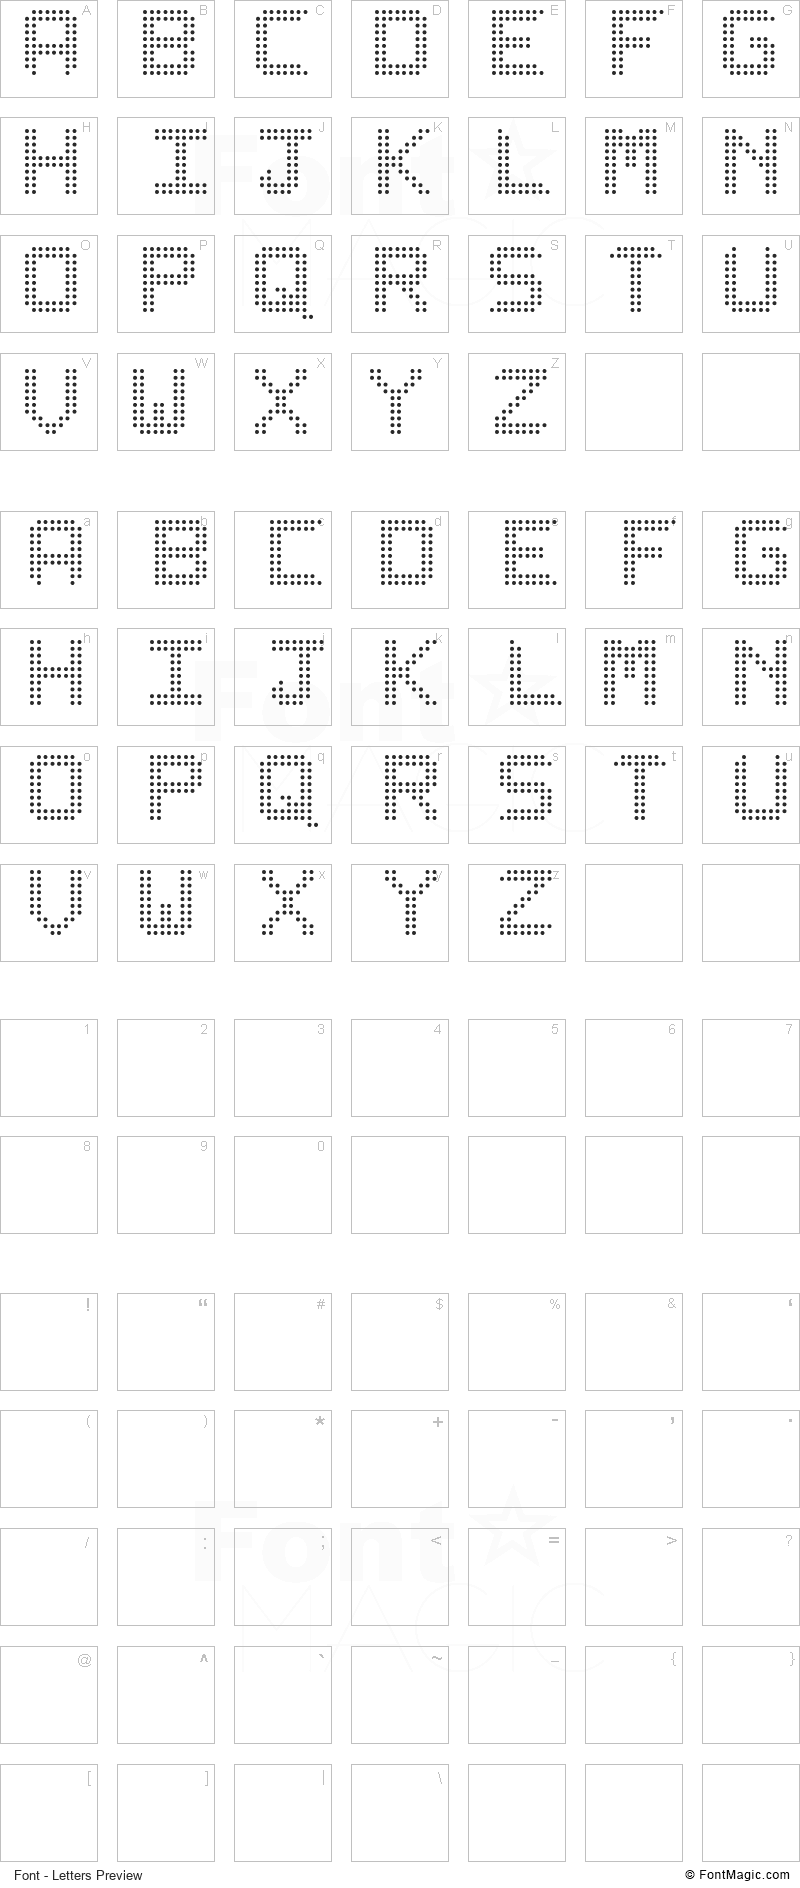 Lediz ST Font - All Latters Preview Chart